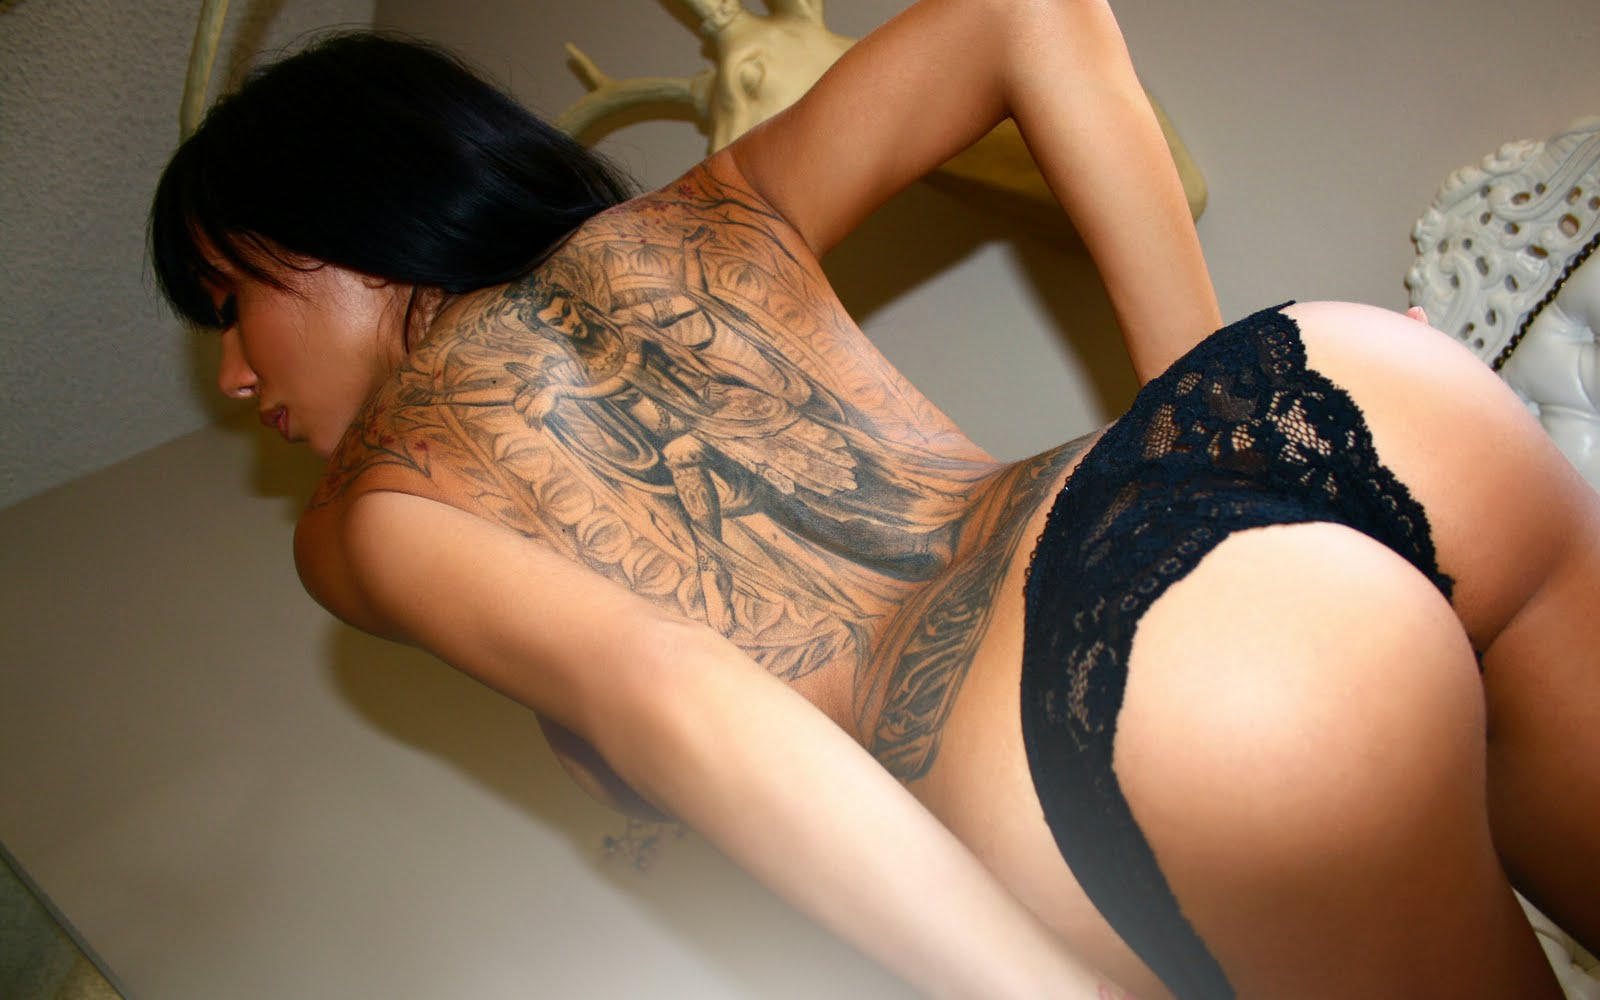 Wongseng hd wallpapers wallpaper sexy ass hot back tattoo for Hot female back tattoos